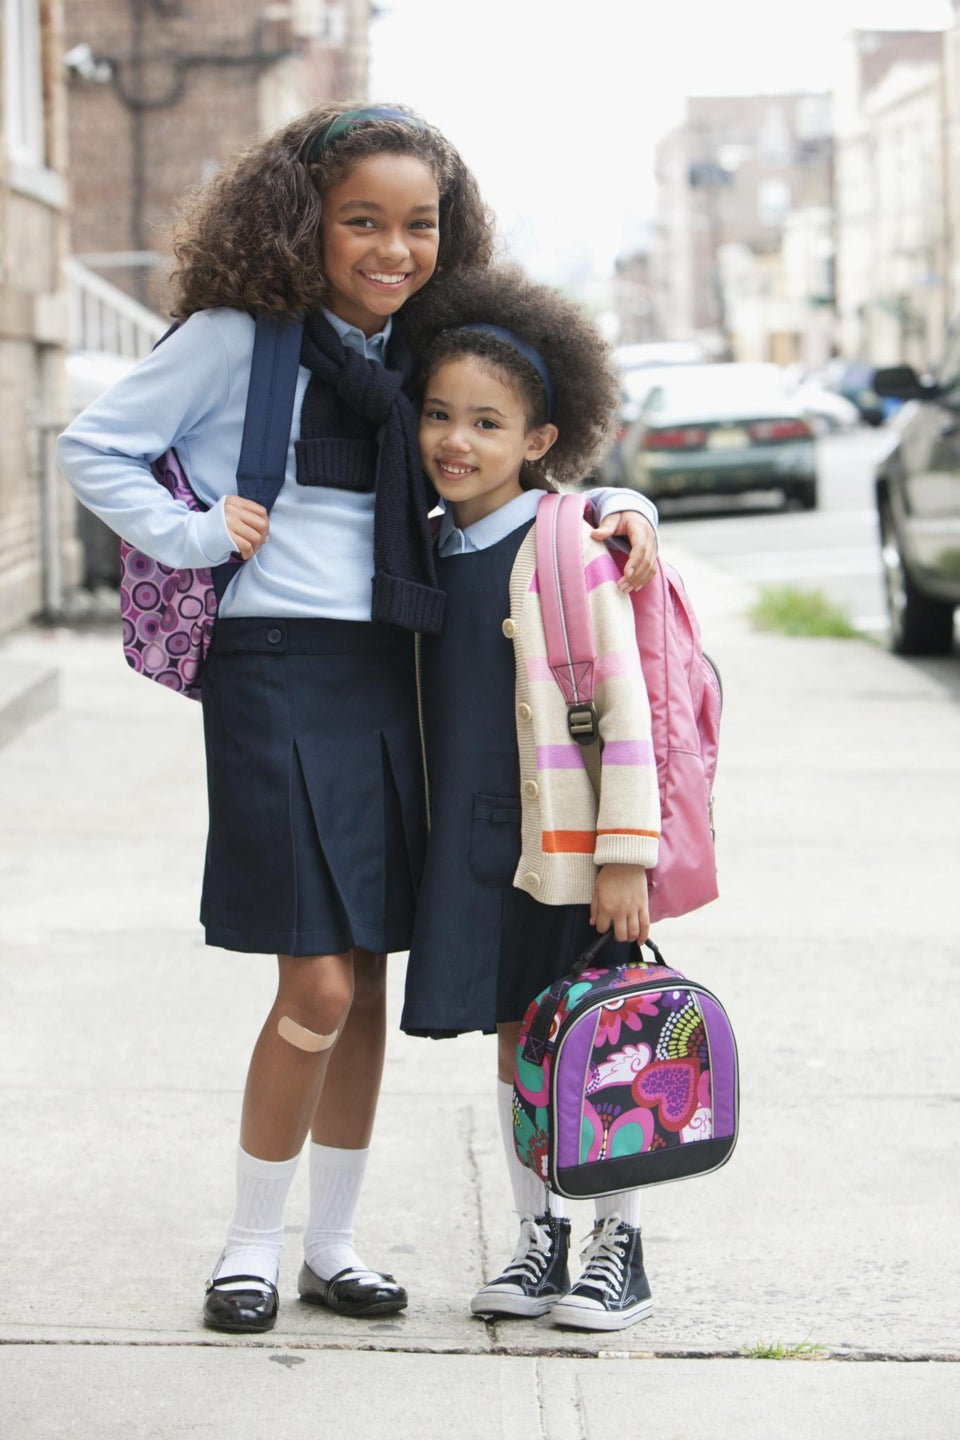 Author Shares Why Schools Explicitly Ban Natural Hairstyles In New Book